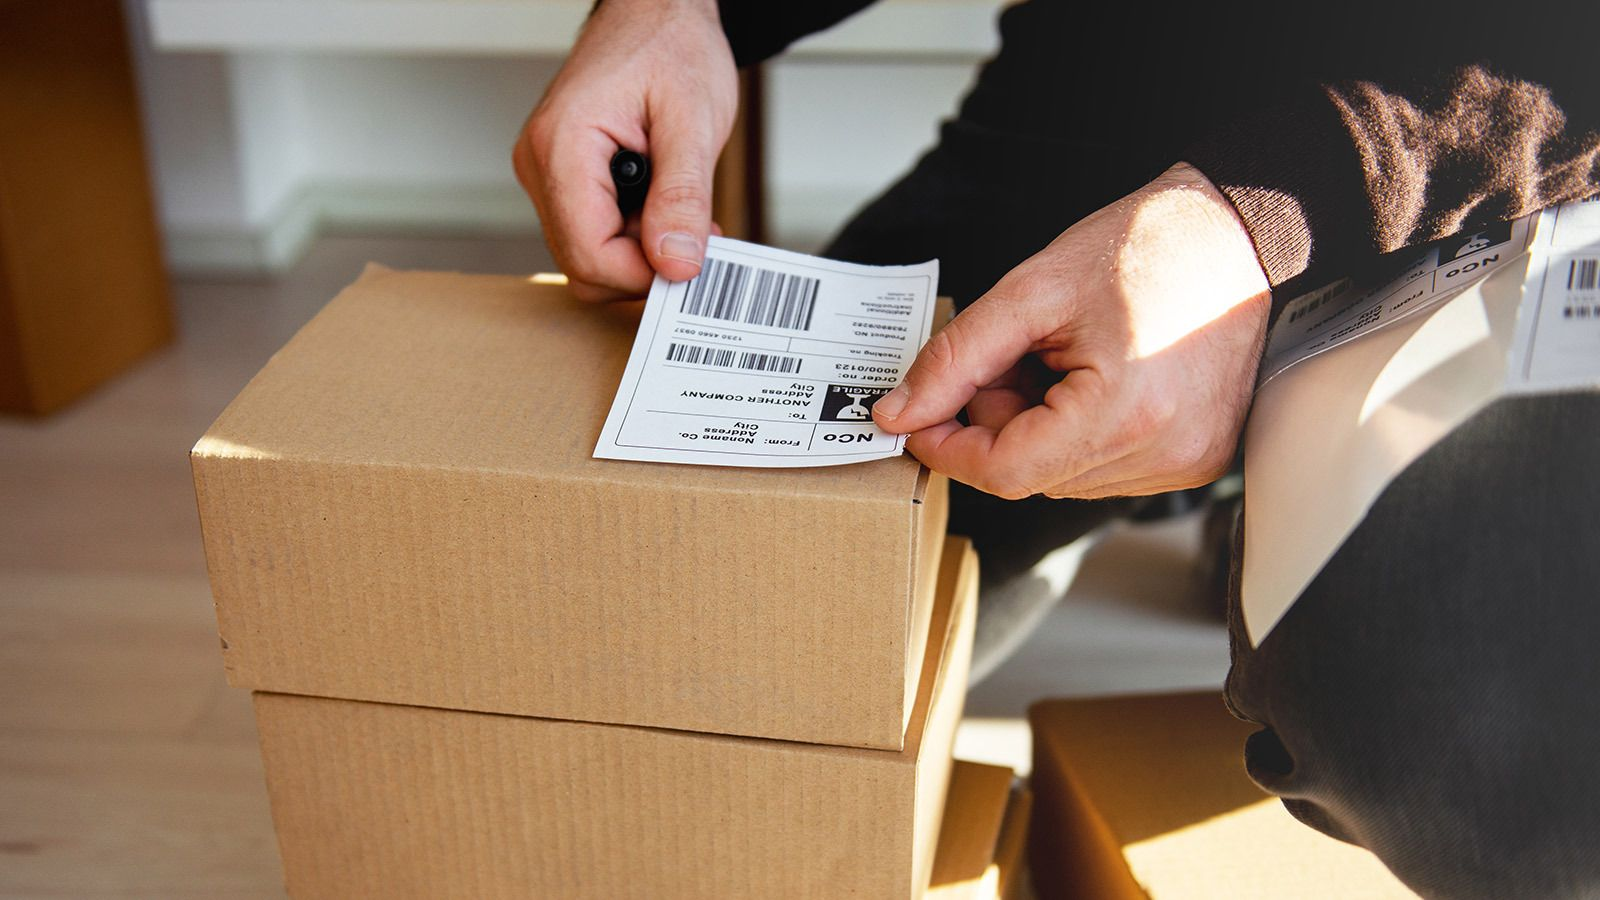 Affixing a prepaid shipping label to a package